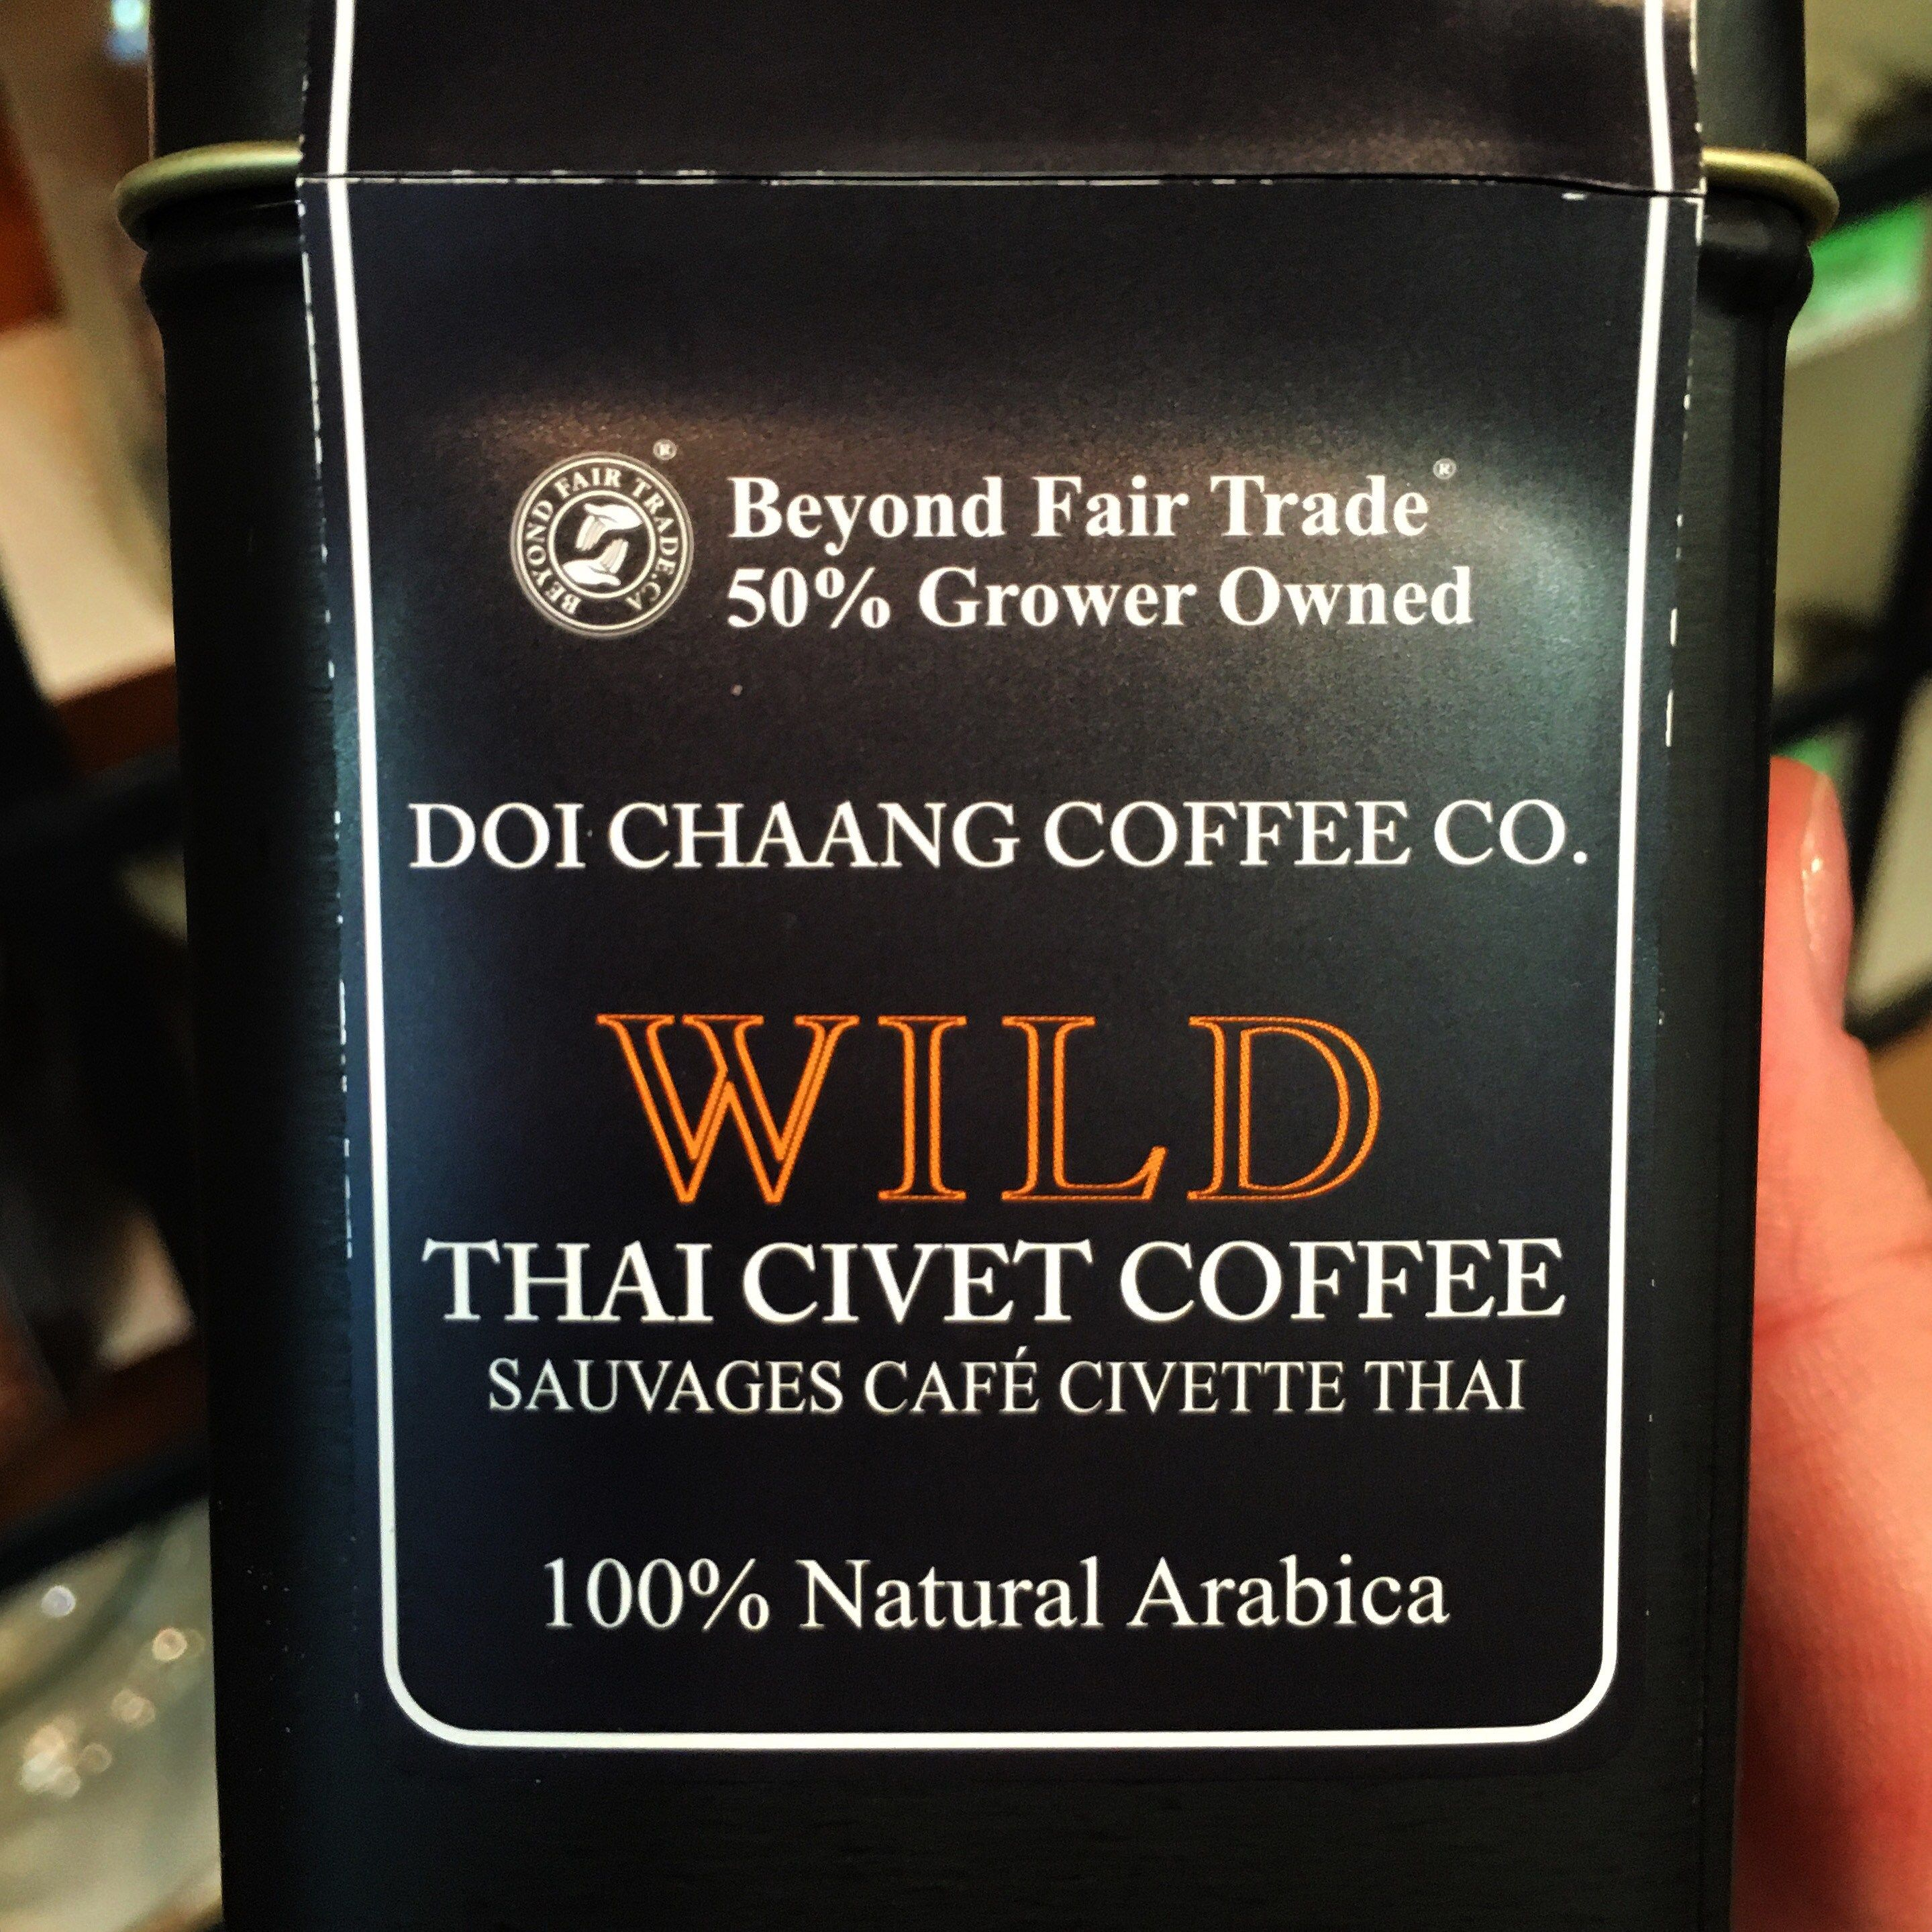 wild civet coffee What is it? Is it a luxury? Or a